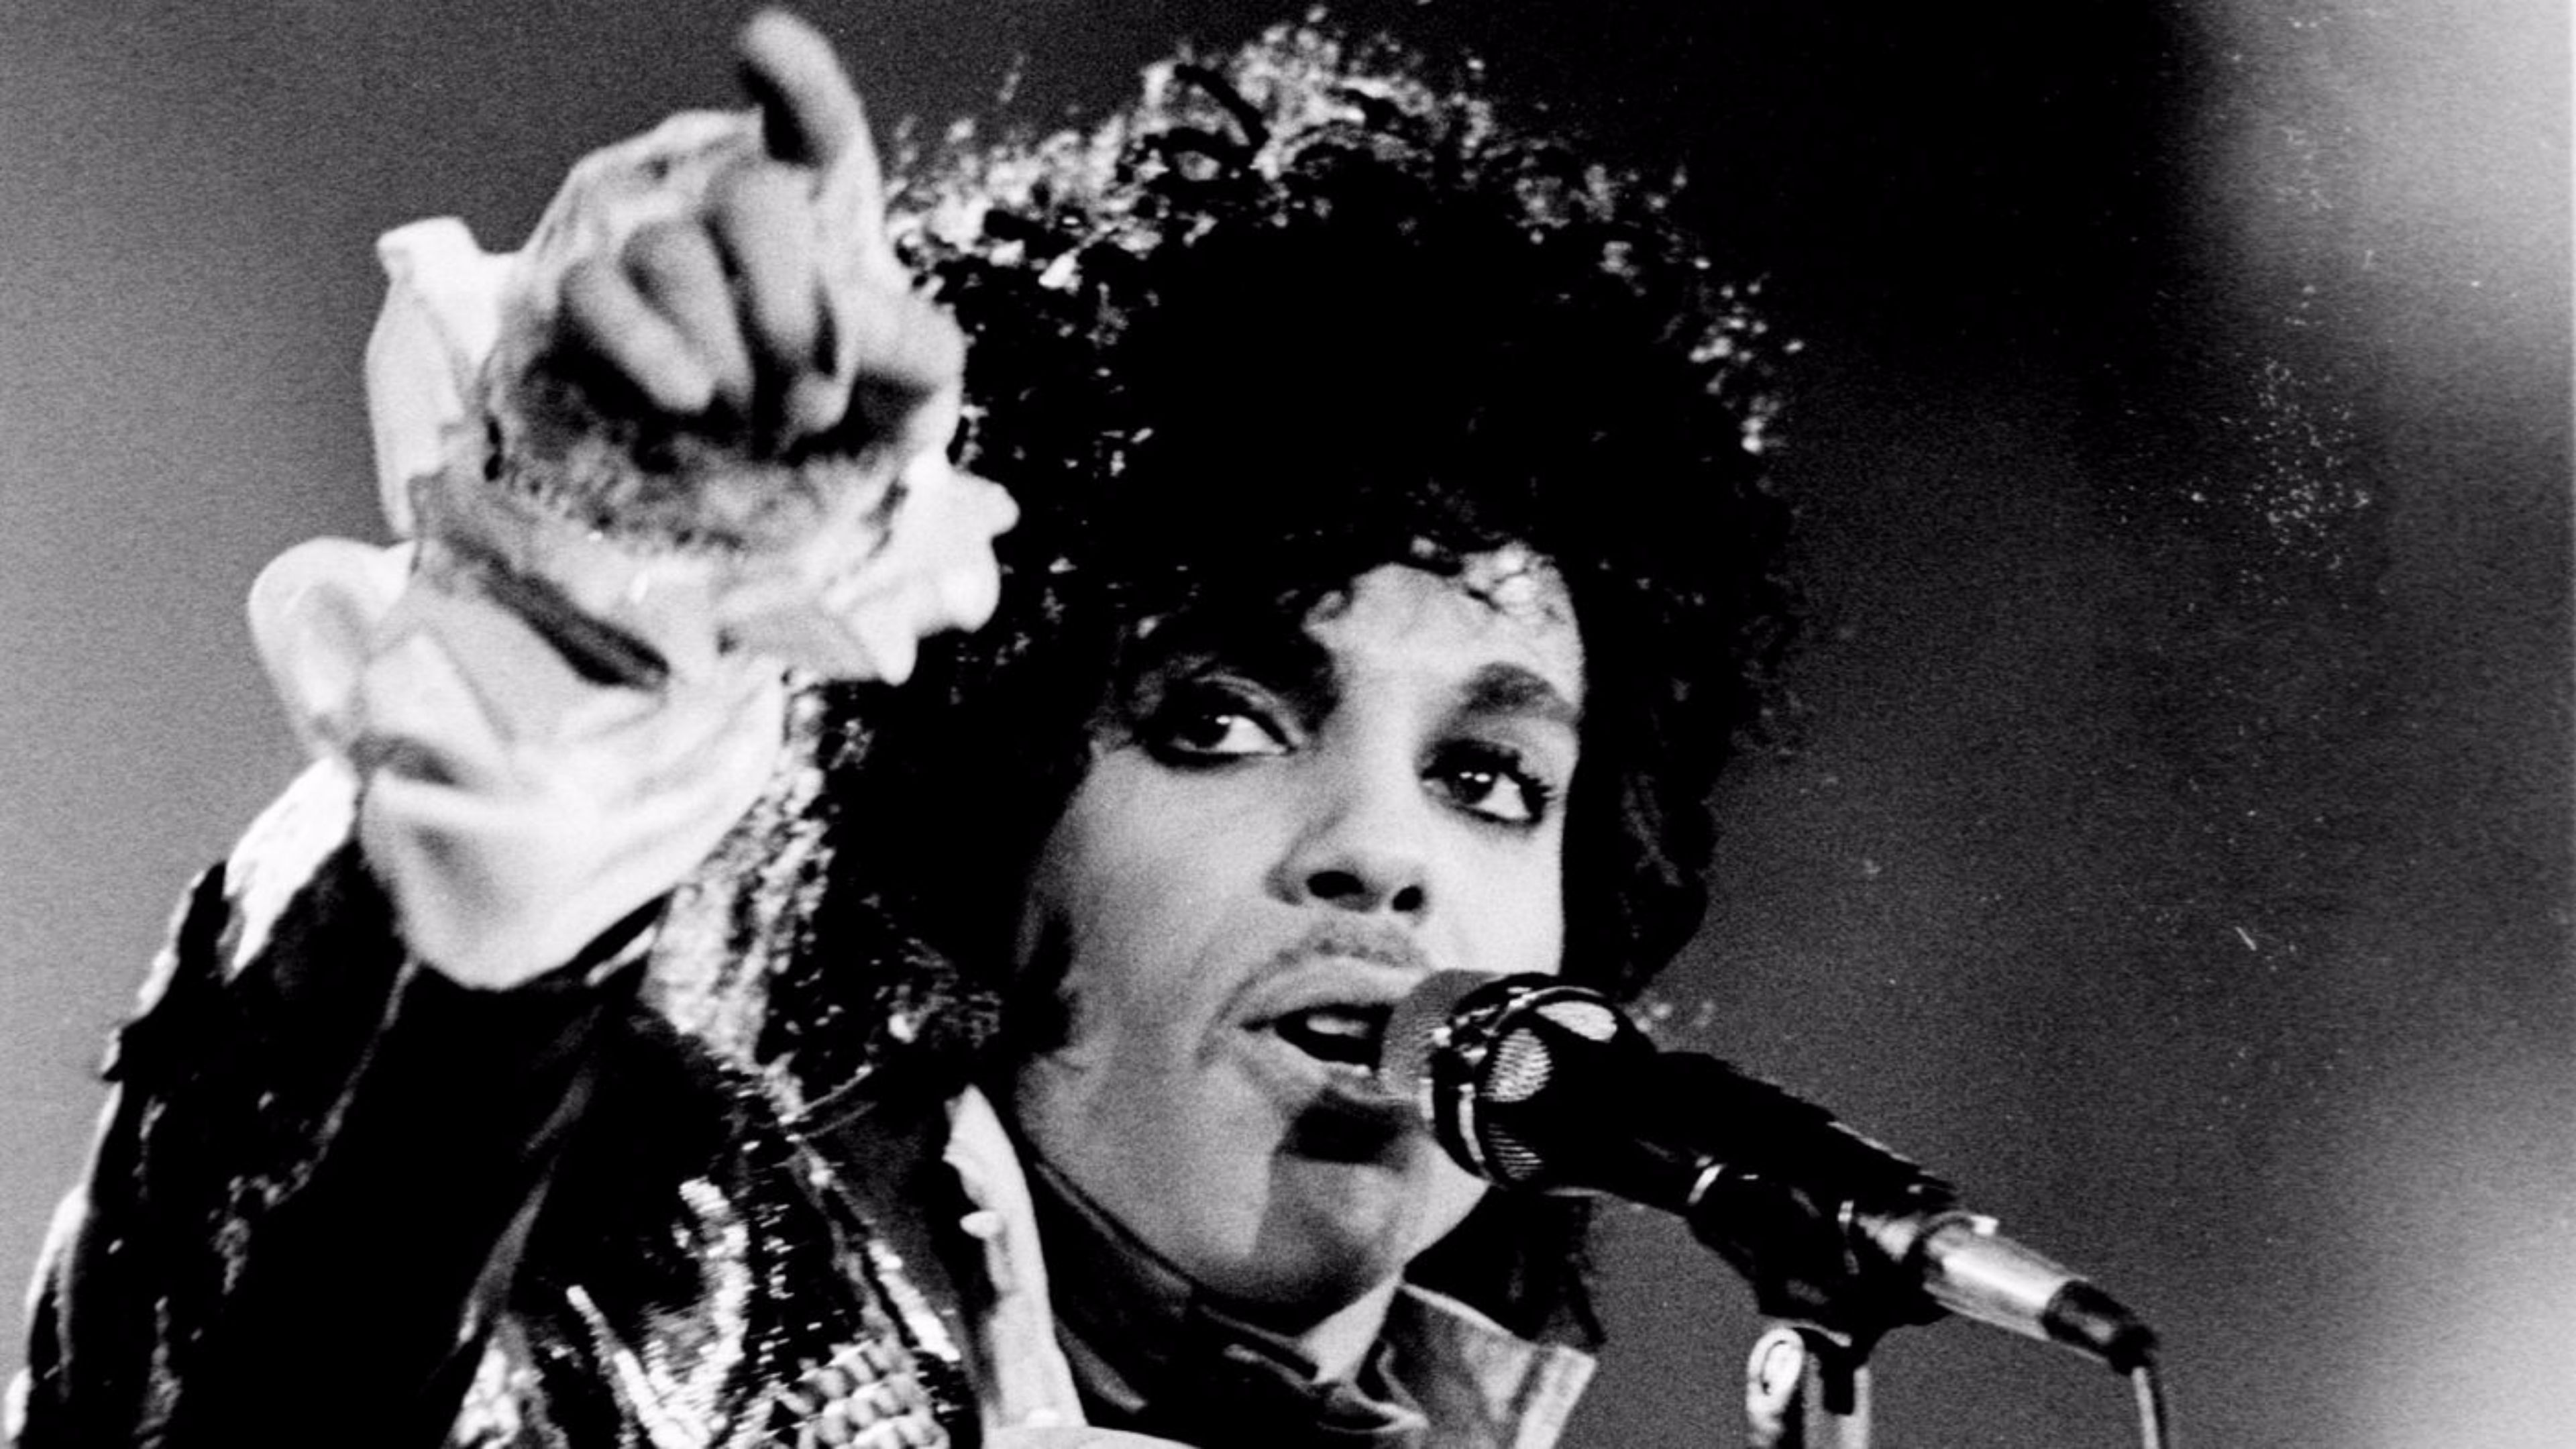 New Black And White Prince 4k Wallpapers Dse Live